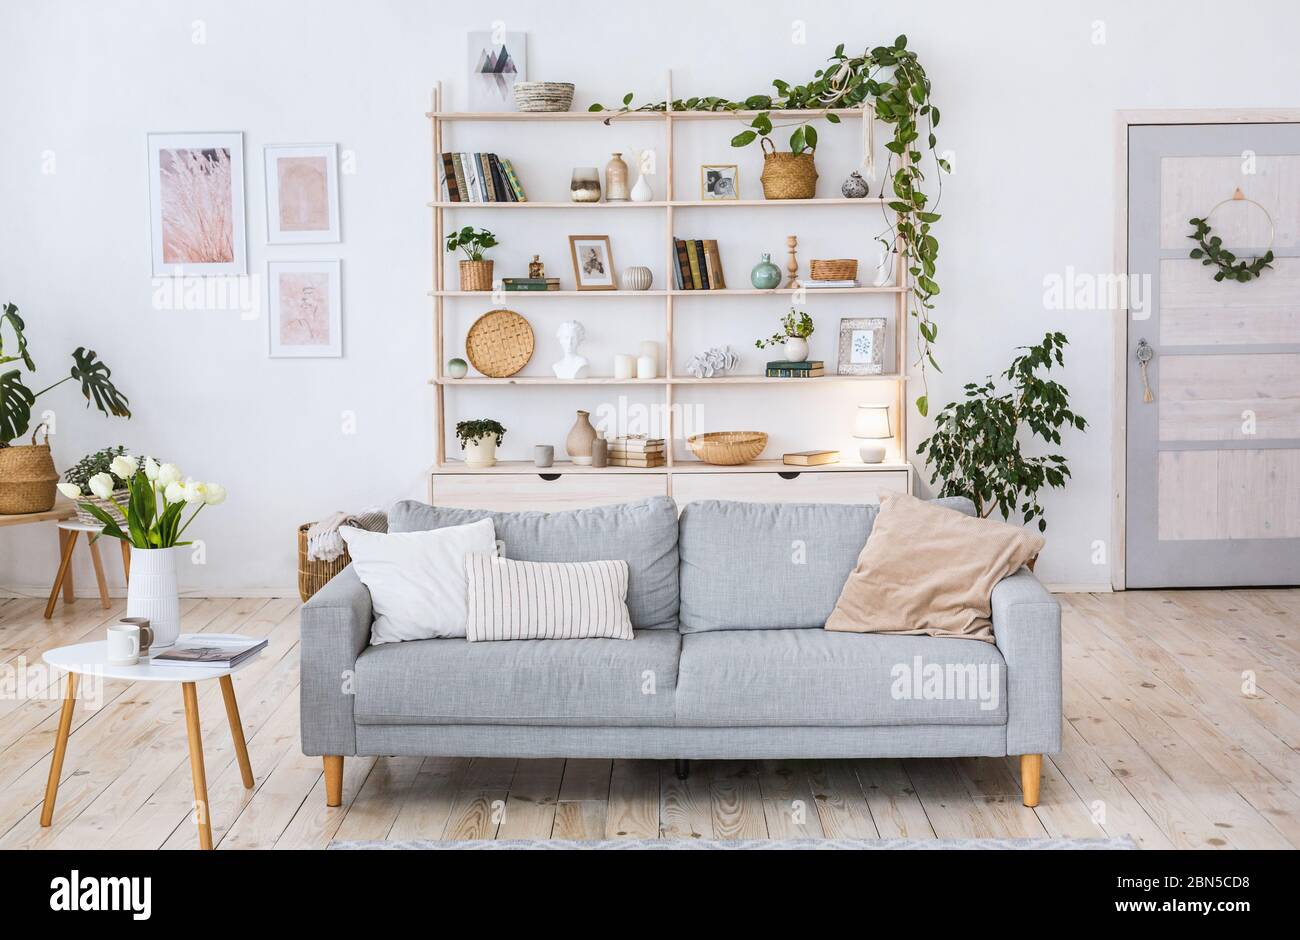 Cozy Design Light Wall Wooden Floor Blue Sofa And Plants In Pot Stock Photo Alamy